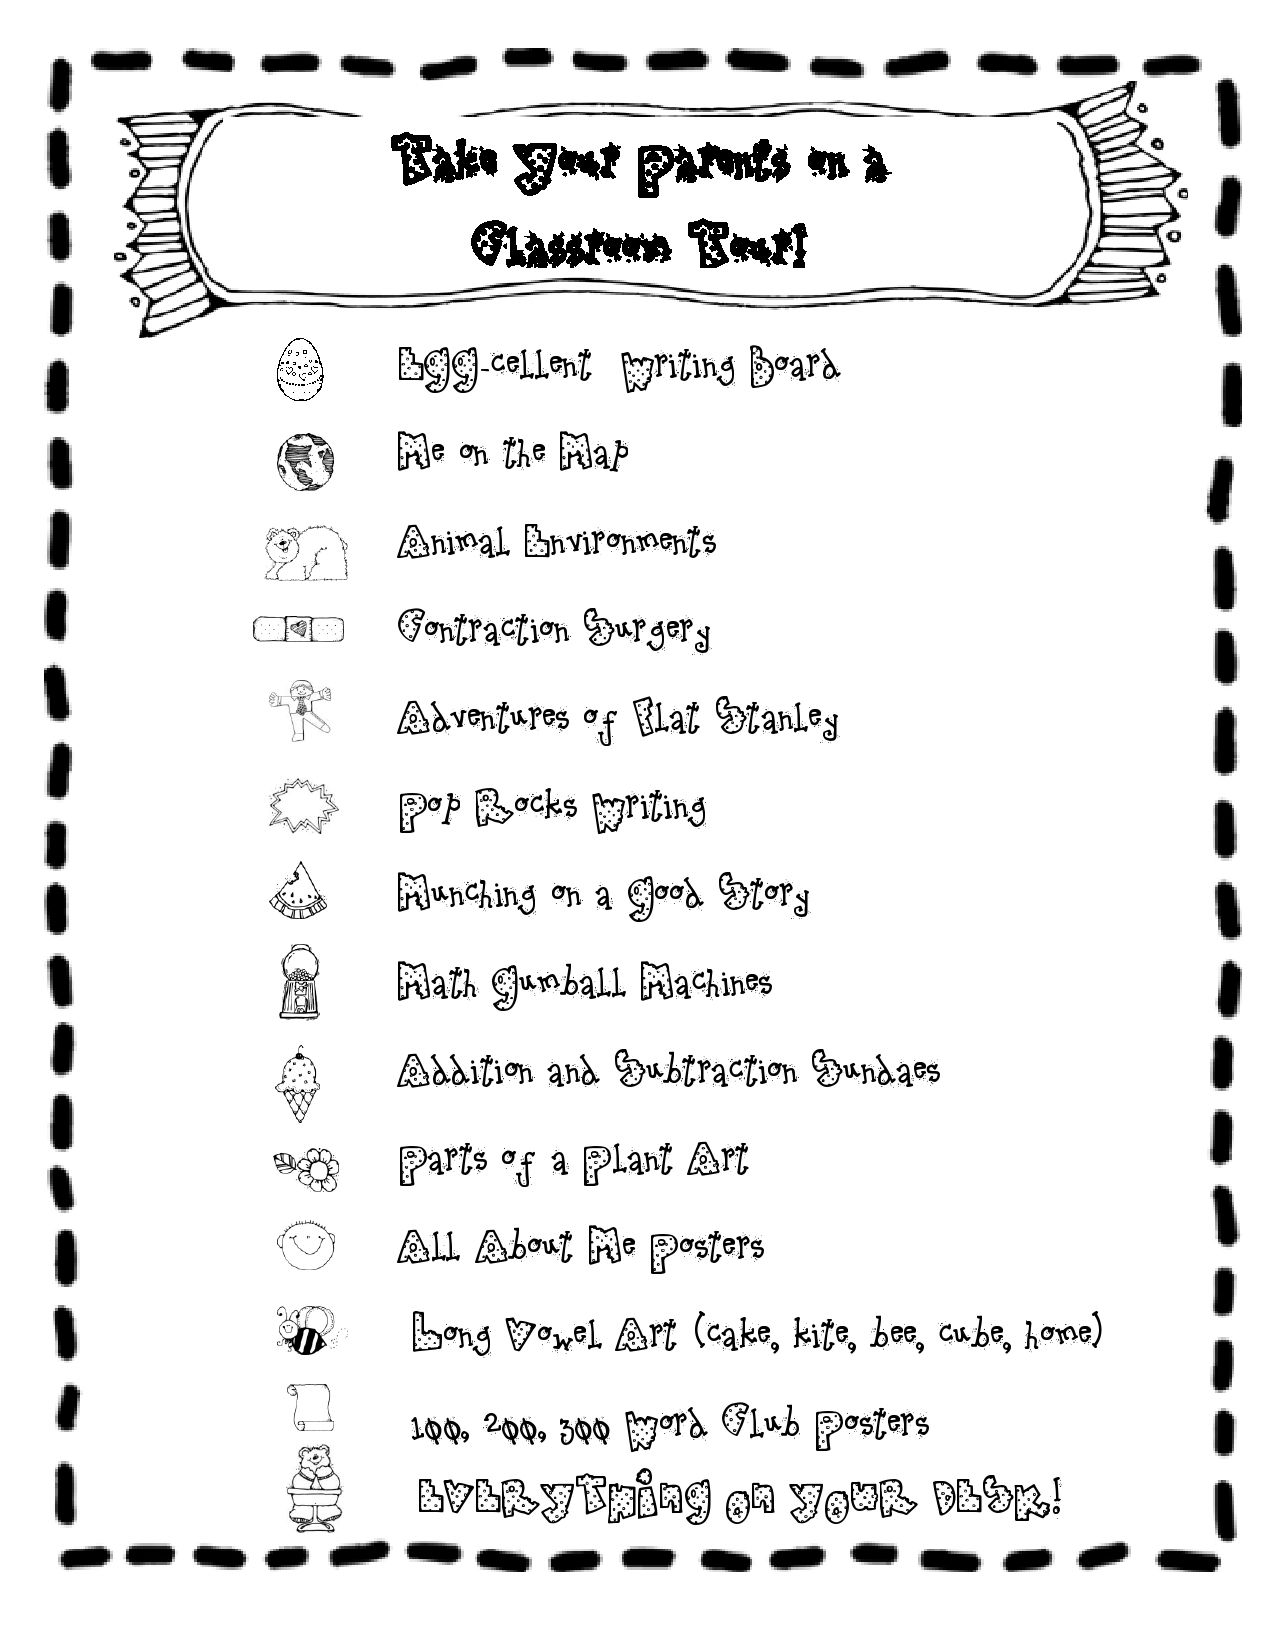 Fun And Visual Open House Checklist So Kids Can Give Their